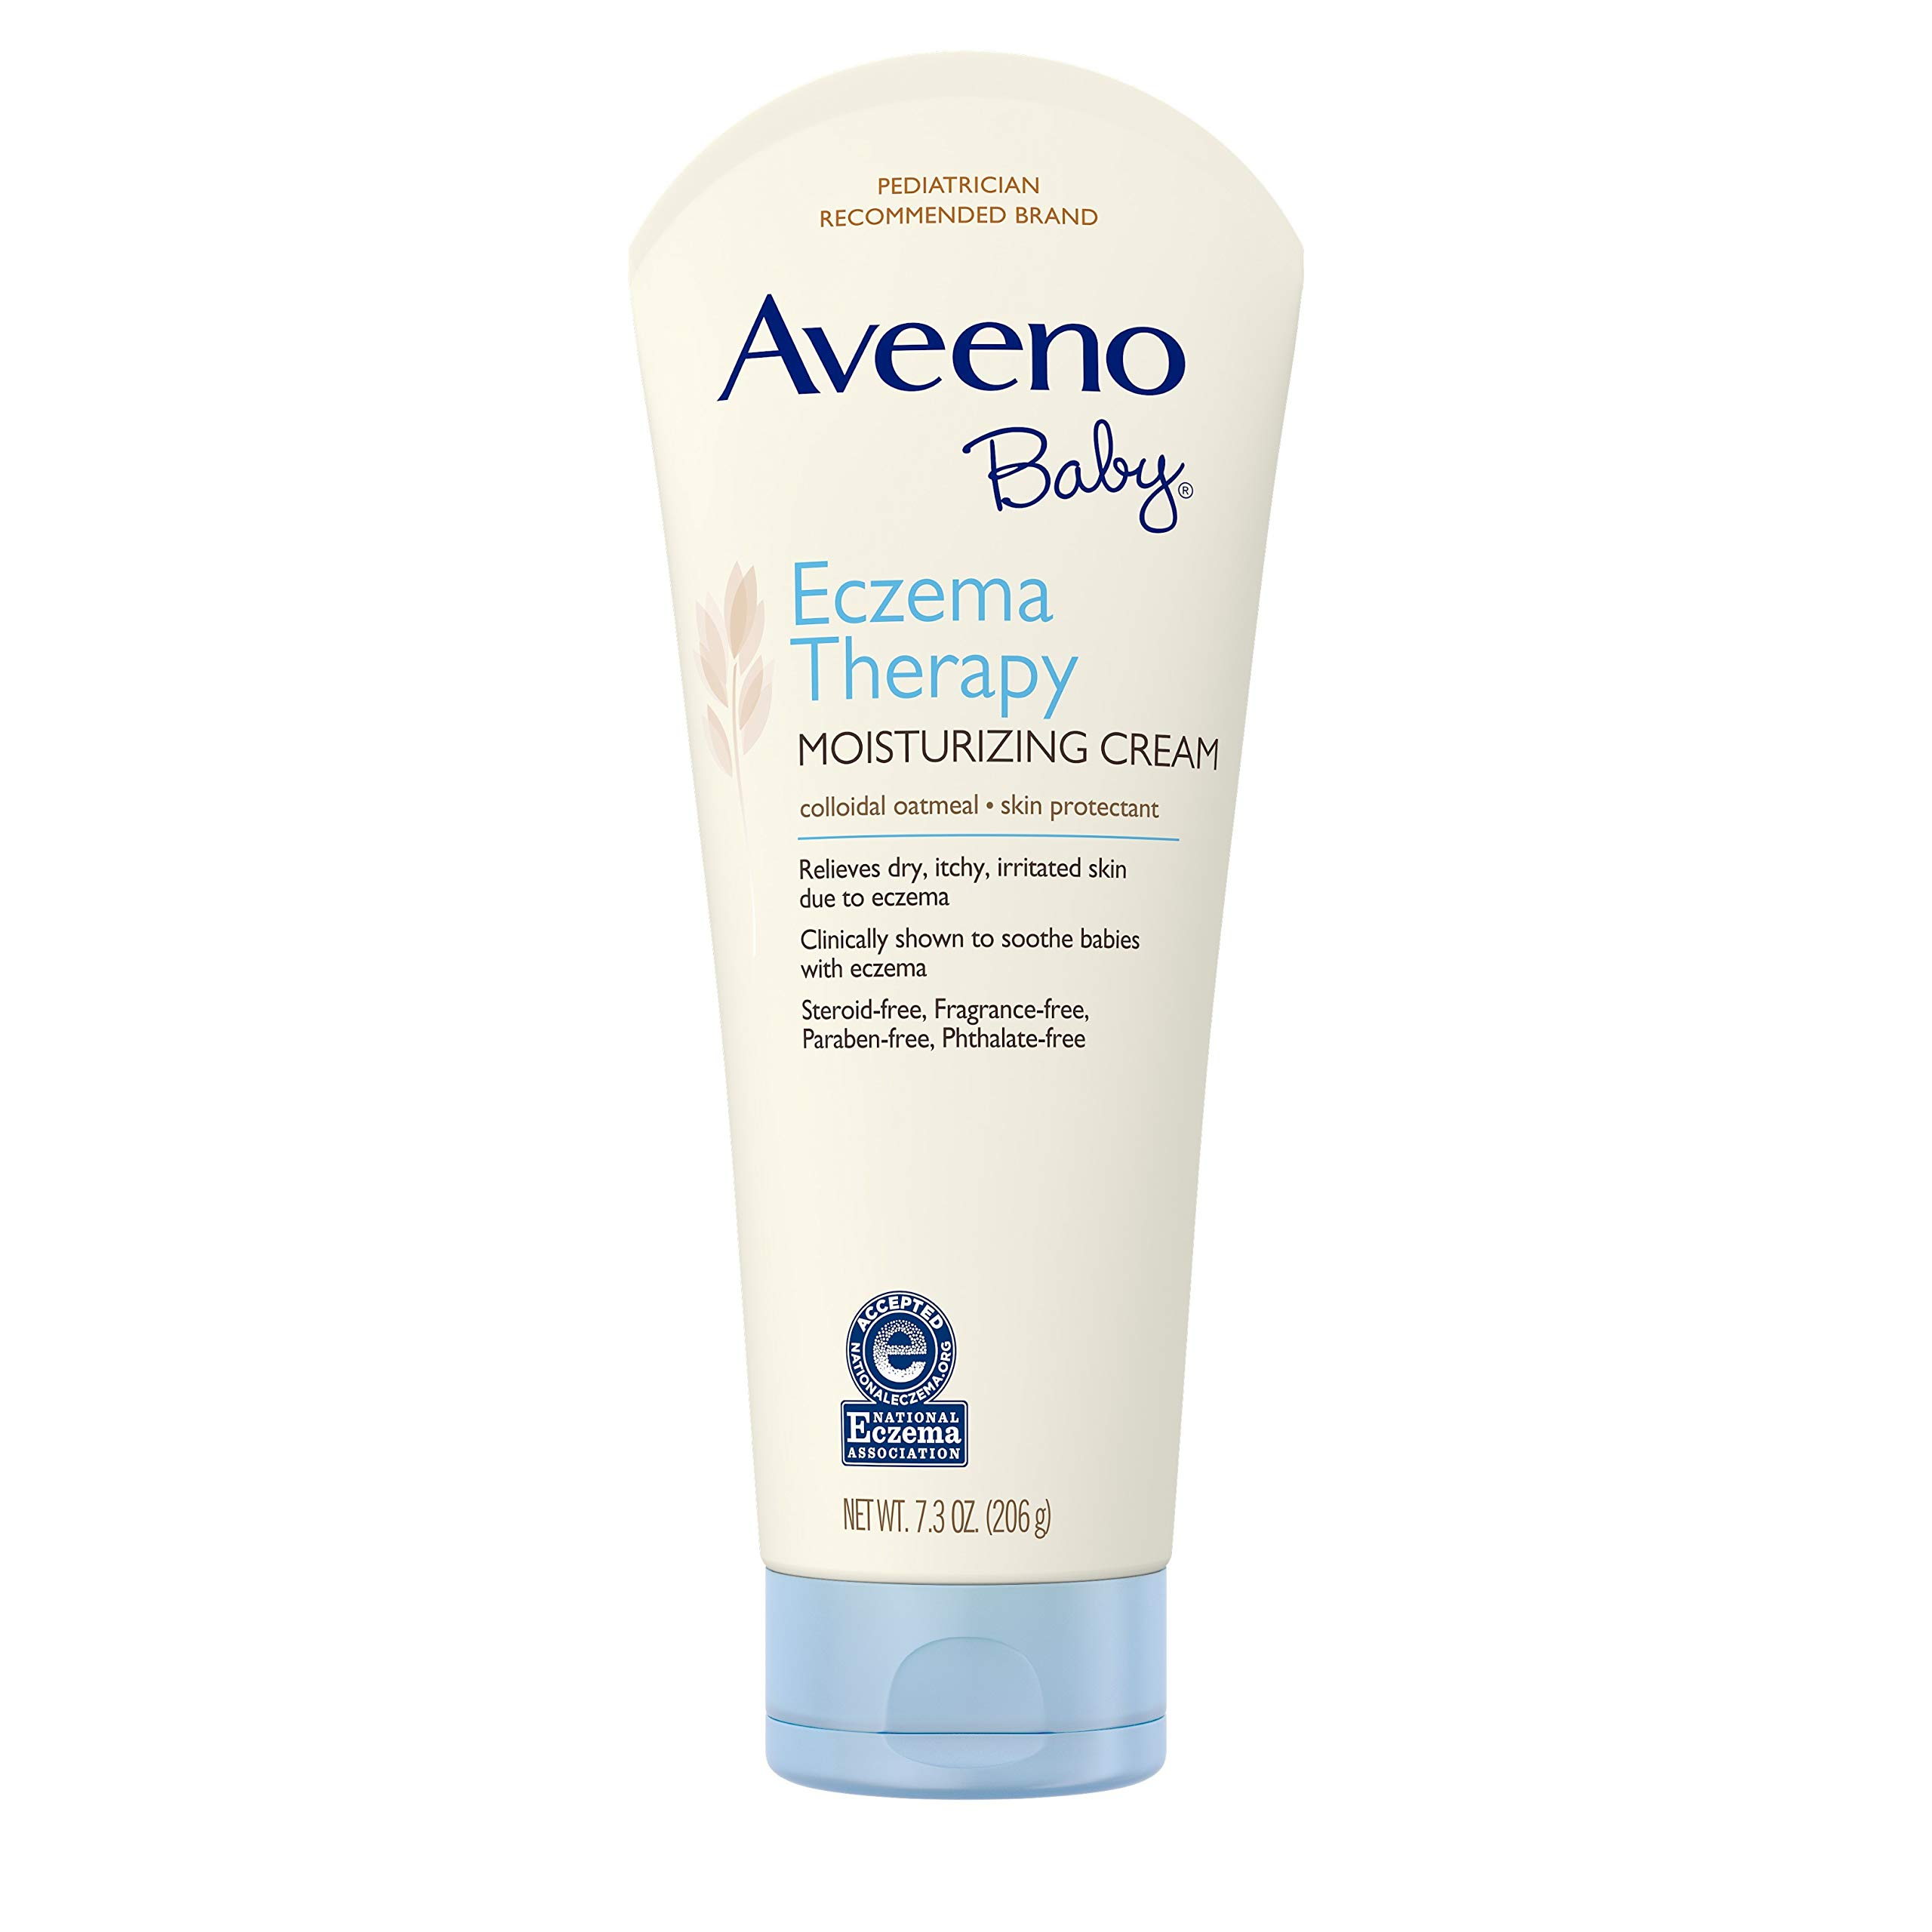 Aveeno Baby Eczema Therapy Moisturizing Cream with Natural Colloidal Oatmeal for Eczema Relief, 7.3 oz by Aveeno